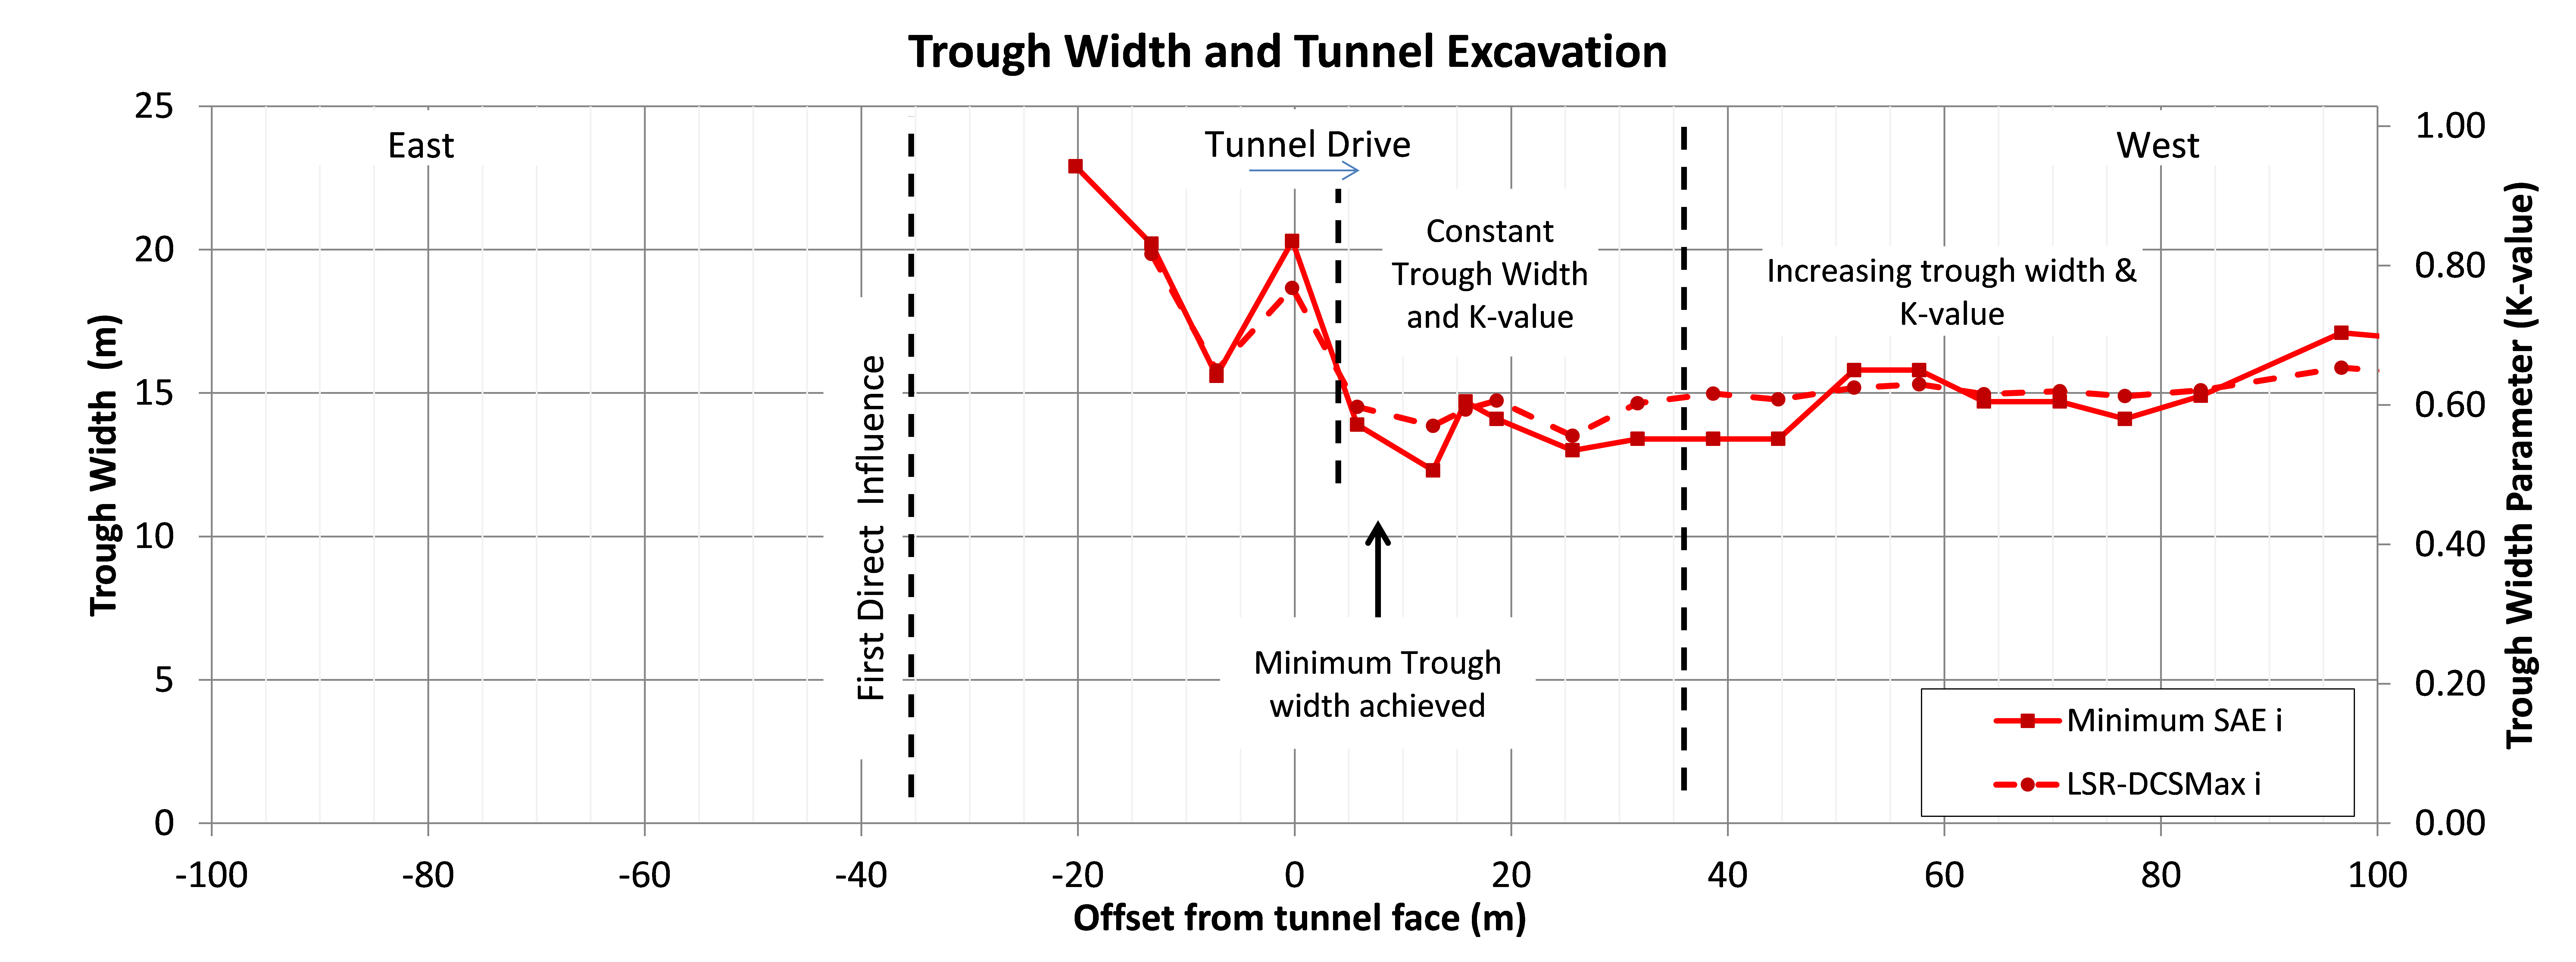 Figure 17- Face dependent analysis of Trough Width and Trough Width Parameter for the pilot tunnel